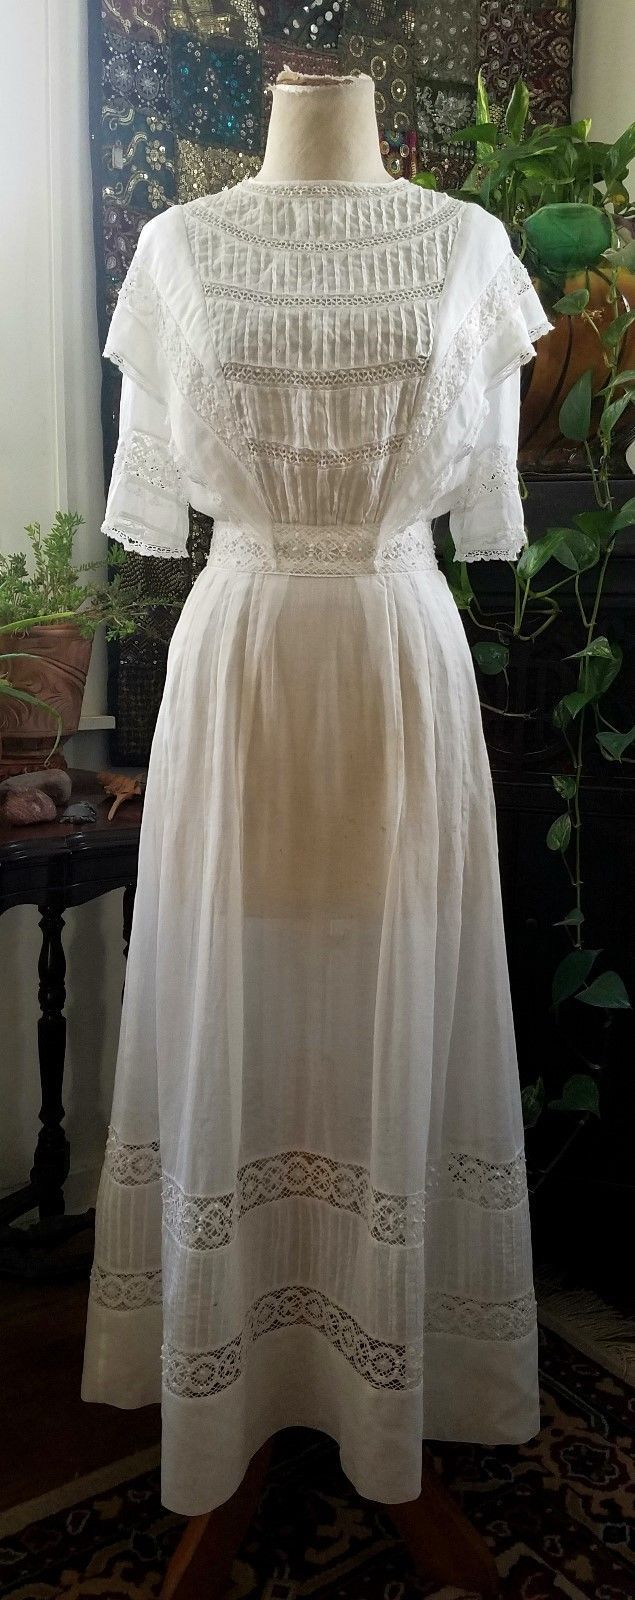 1910s Edwardian Sheer White Cotton Voile Lace Dress Gown Ruffles Antique White Cotton Lace Dress Lace White Dress White Victorian Dress [ 1600 x 635 Pixel ]